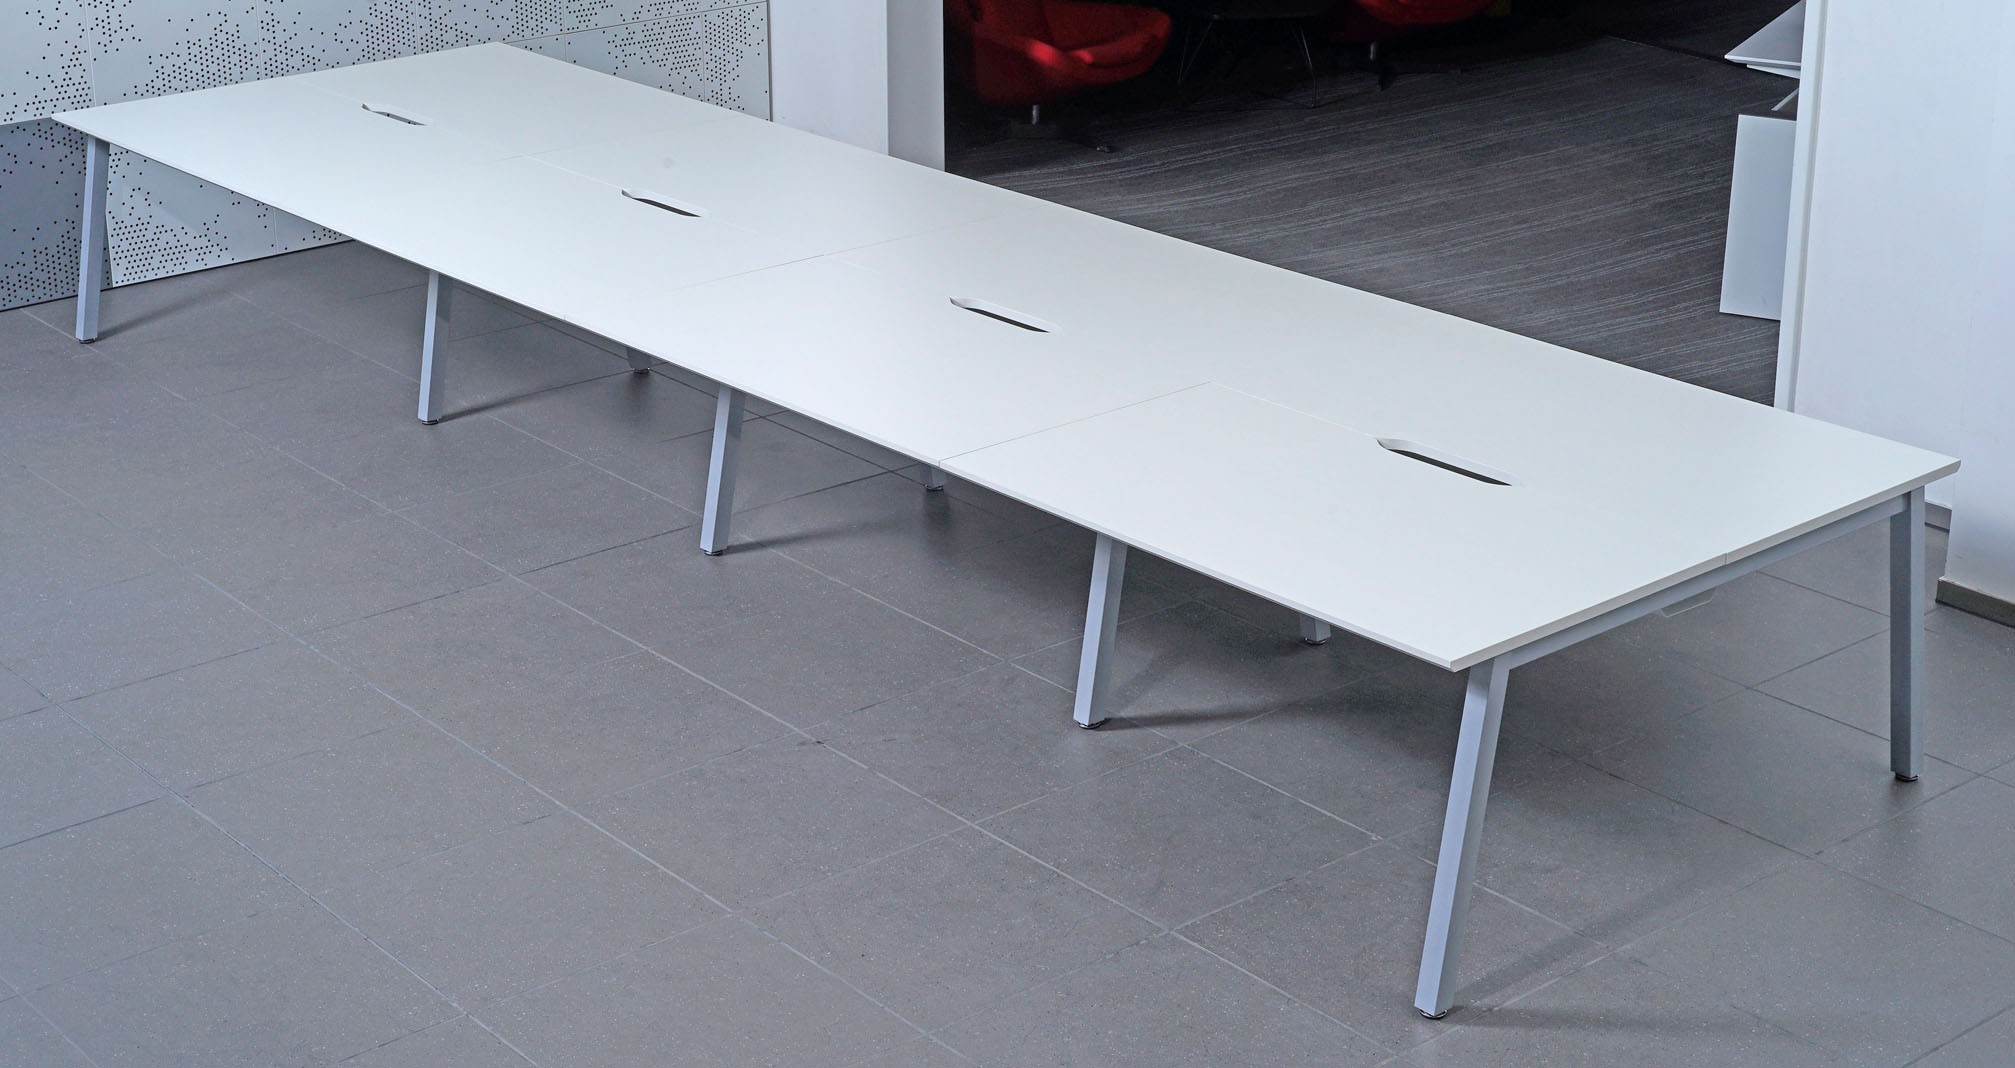 Bench 1200mm Back to Back Desk Add-on (WxDxH) 1200x800x730mm (White Tops, Leg Colour must be specified)